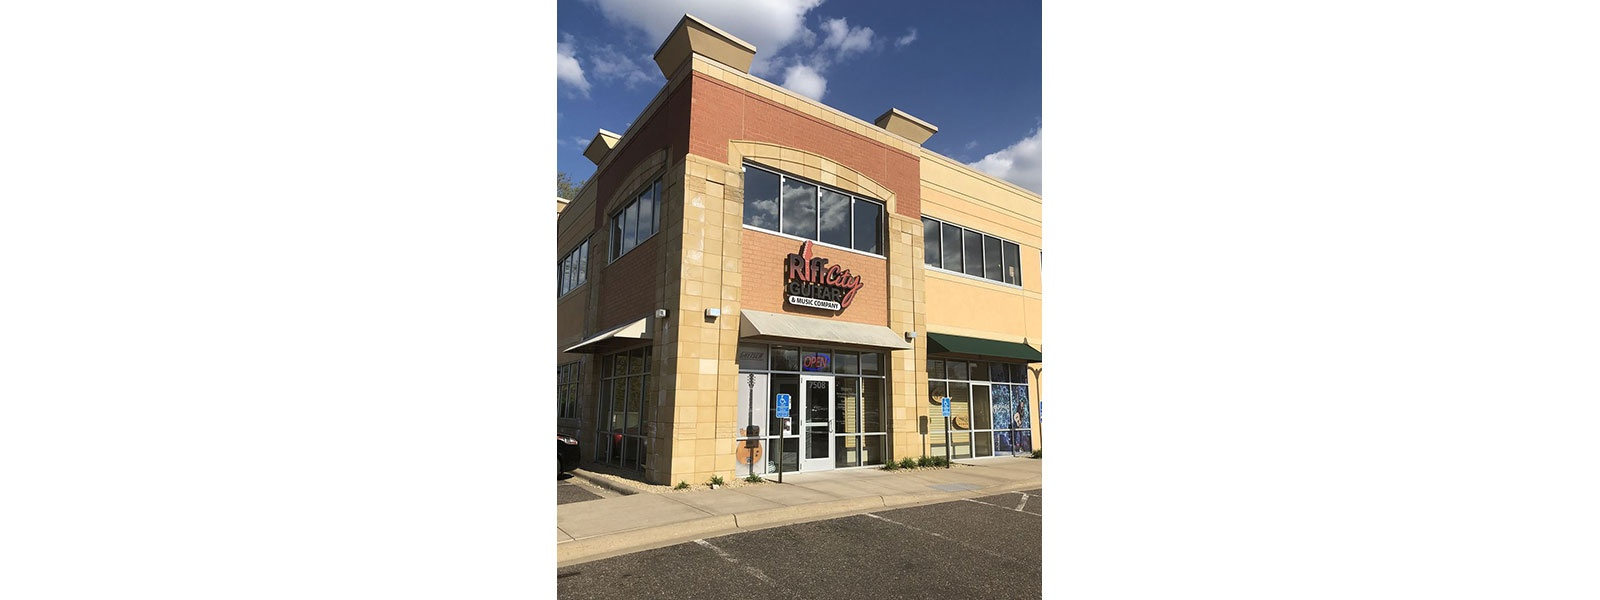 7500 42nd Avenue,New Hope,Hennepin,Minnesota,United States 55428,Office,The Villages on Quebec,42nd Avenue,1101